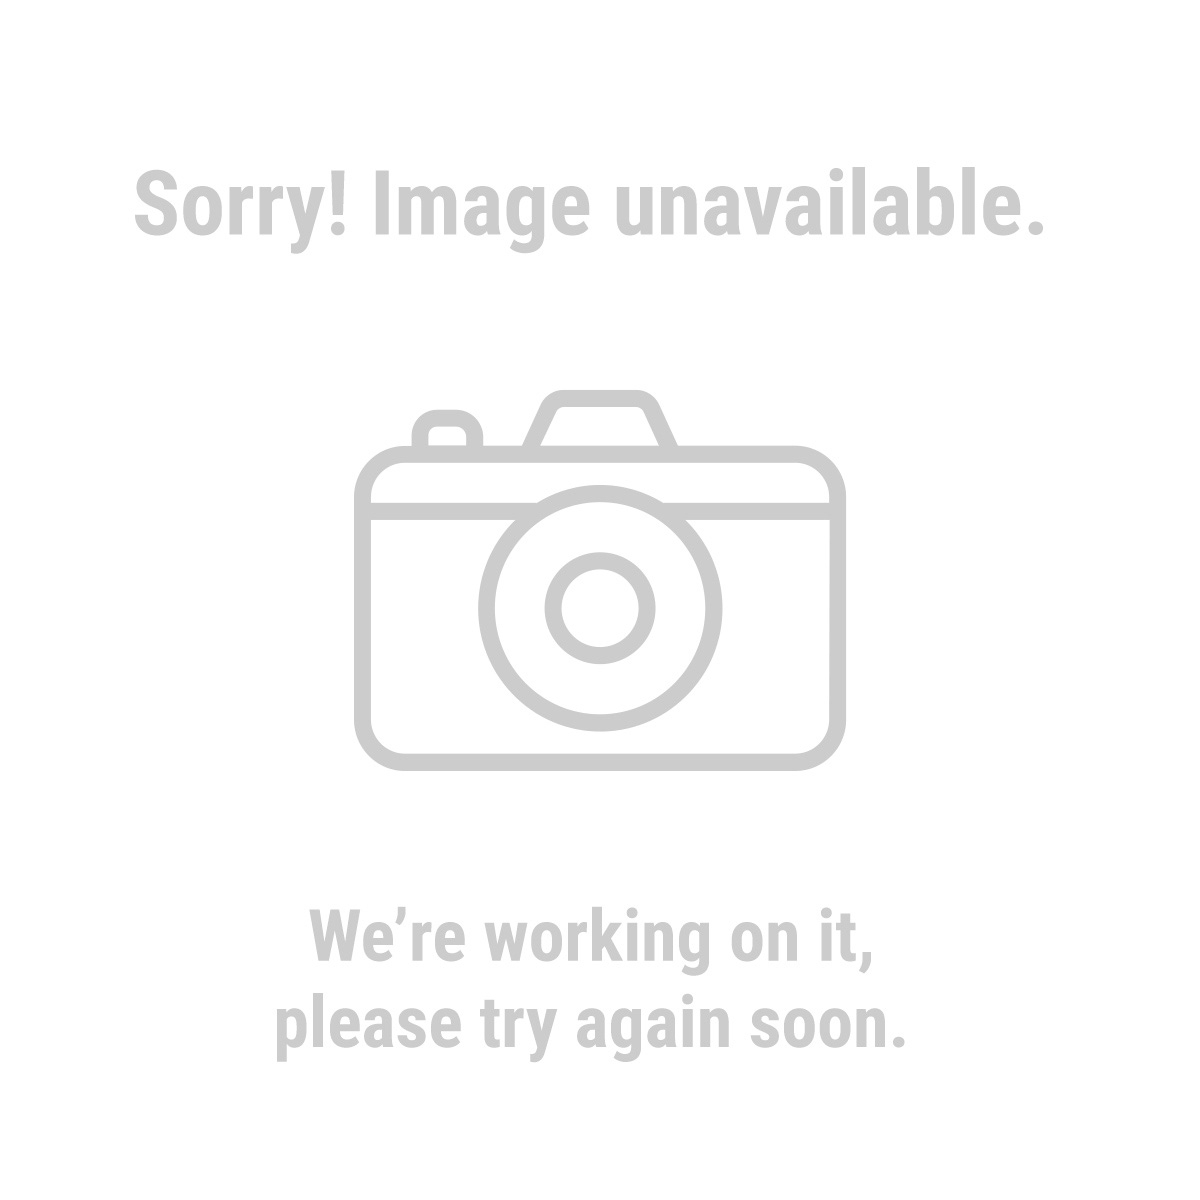 HFT 62345 100 ft. x 12 Gauge Triple Tap Extension Cord with Indicator Light